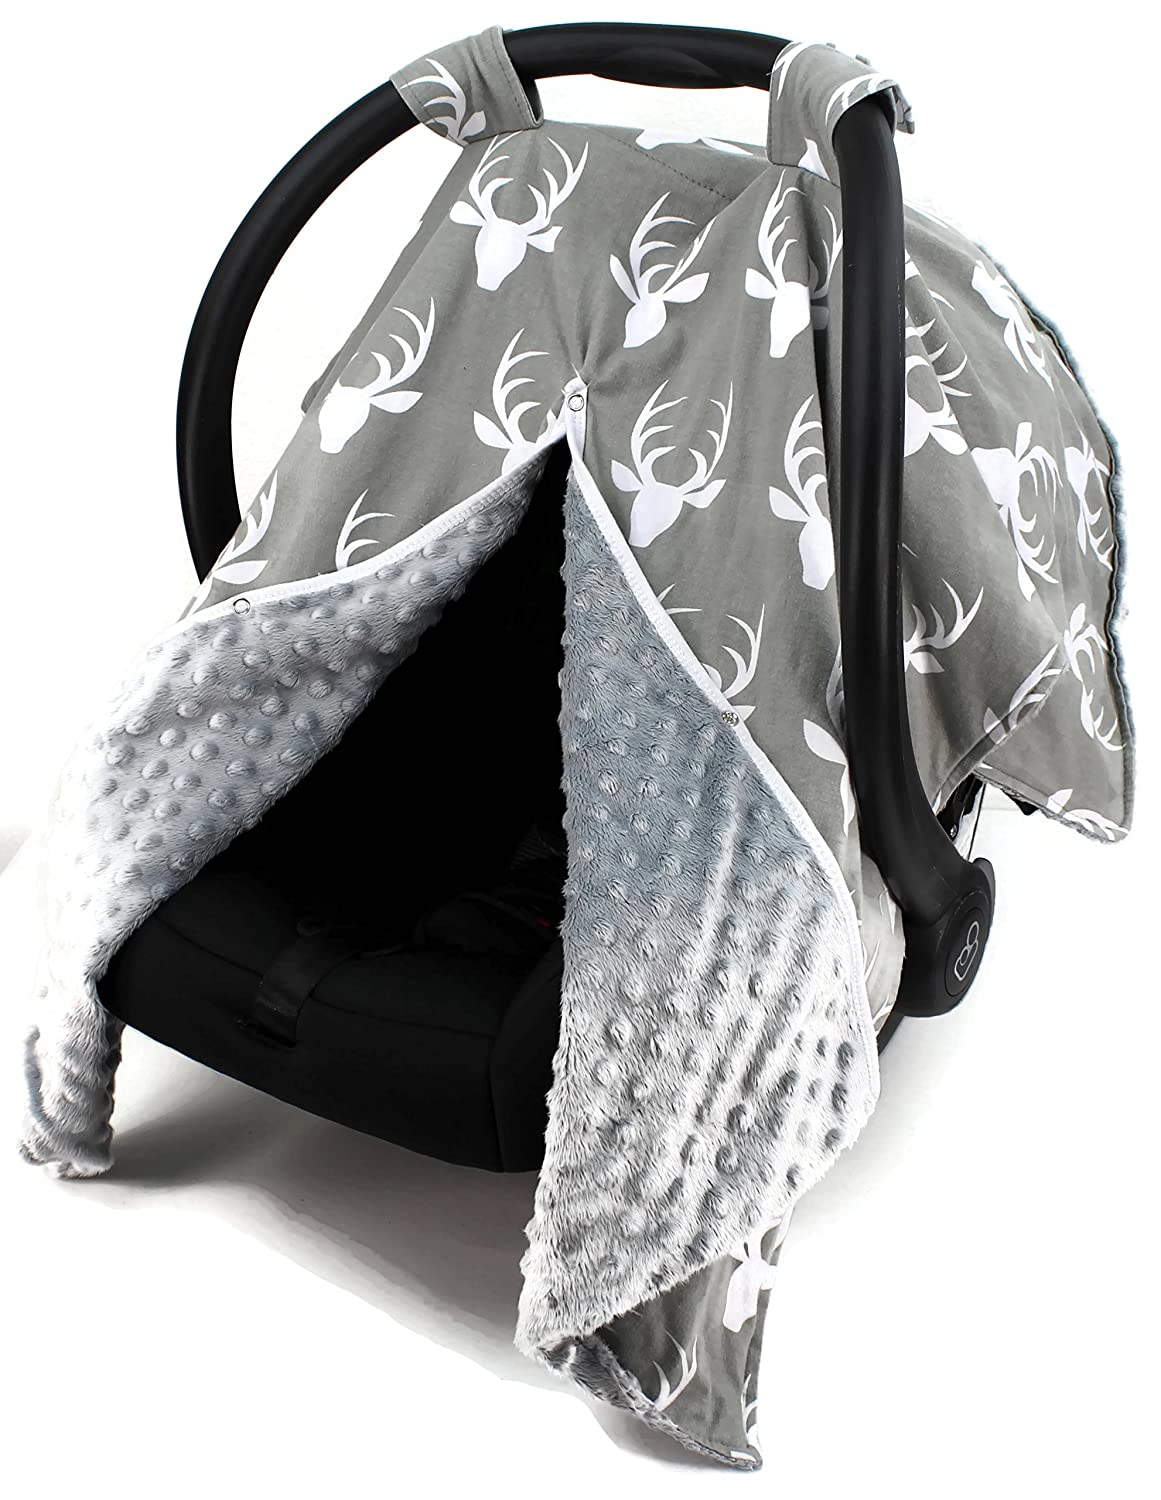 Cute Baby Car Seat Canopy Cover All Cotton or Minky Gray Shower Gift Navy Woodland Deer in Mint Baby Boy